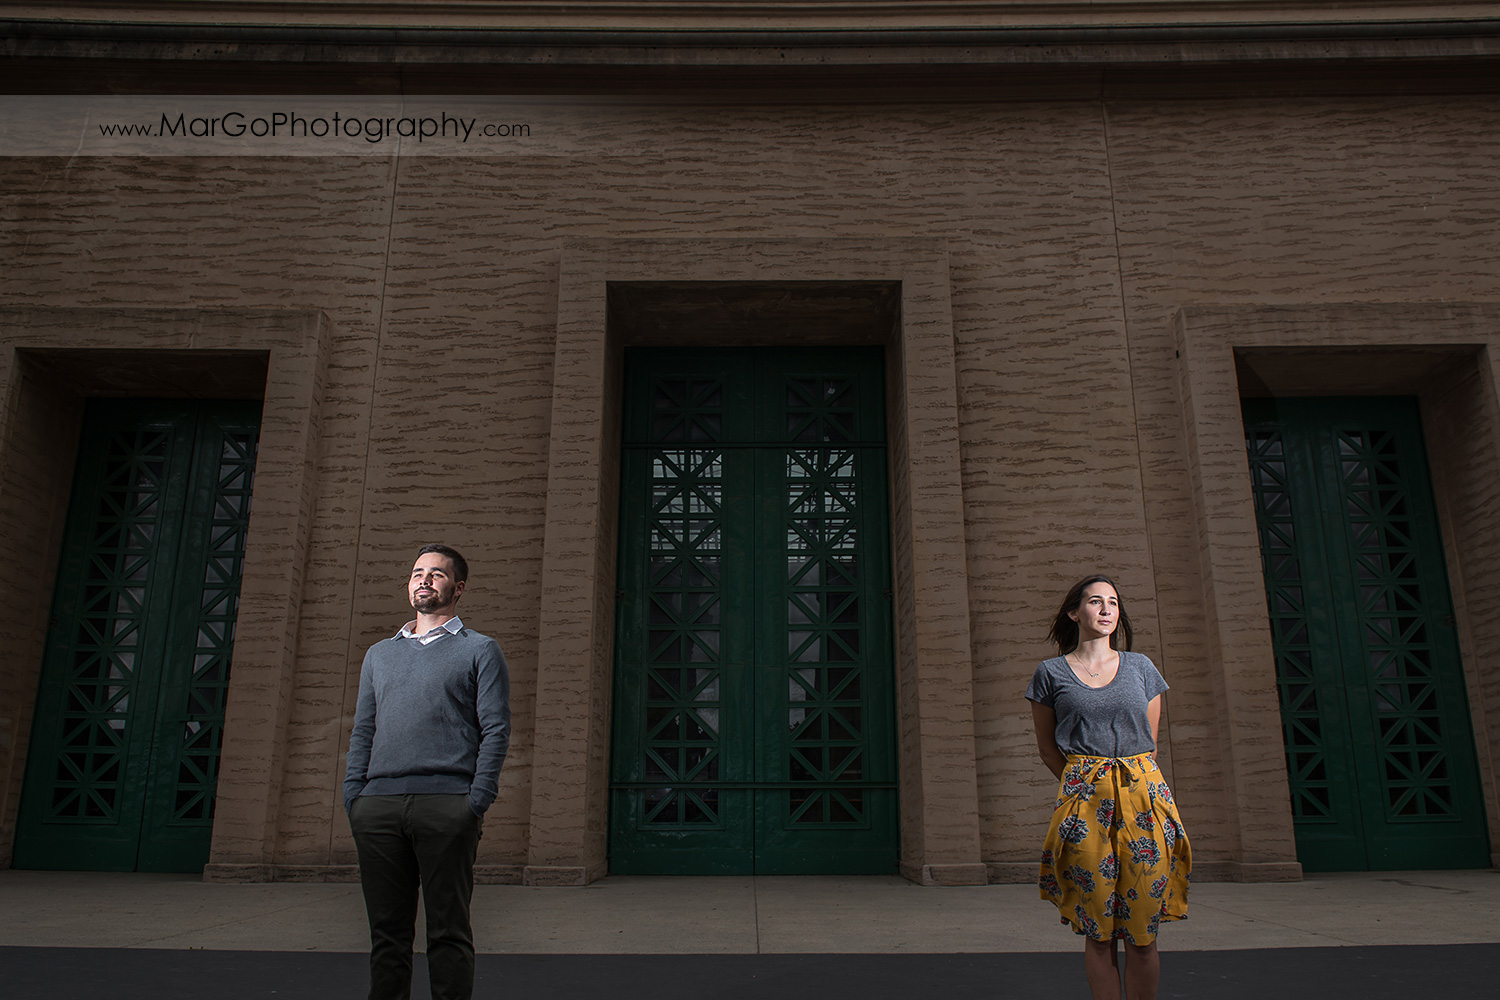 engagement session at Palace of Fine Arts in San Francisco - couple in front of green door